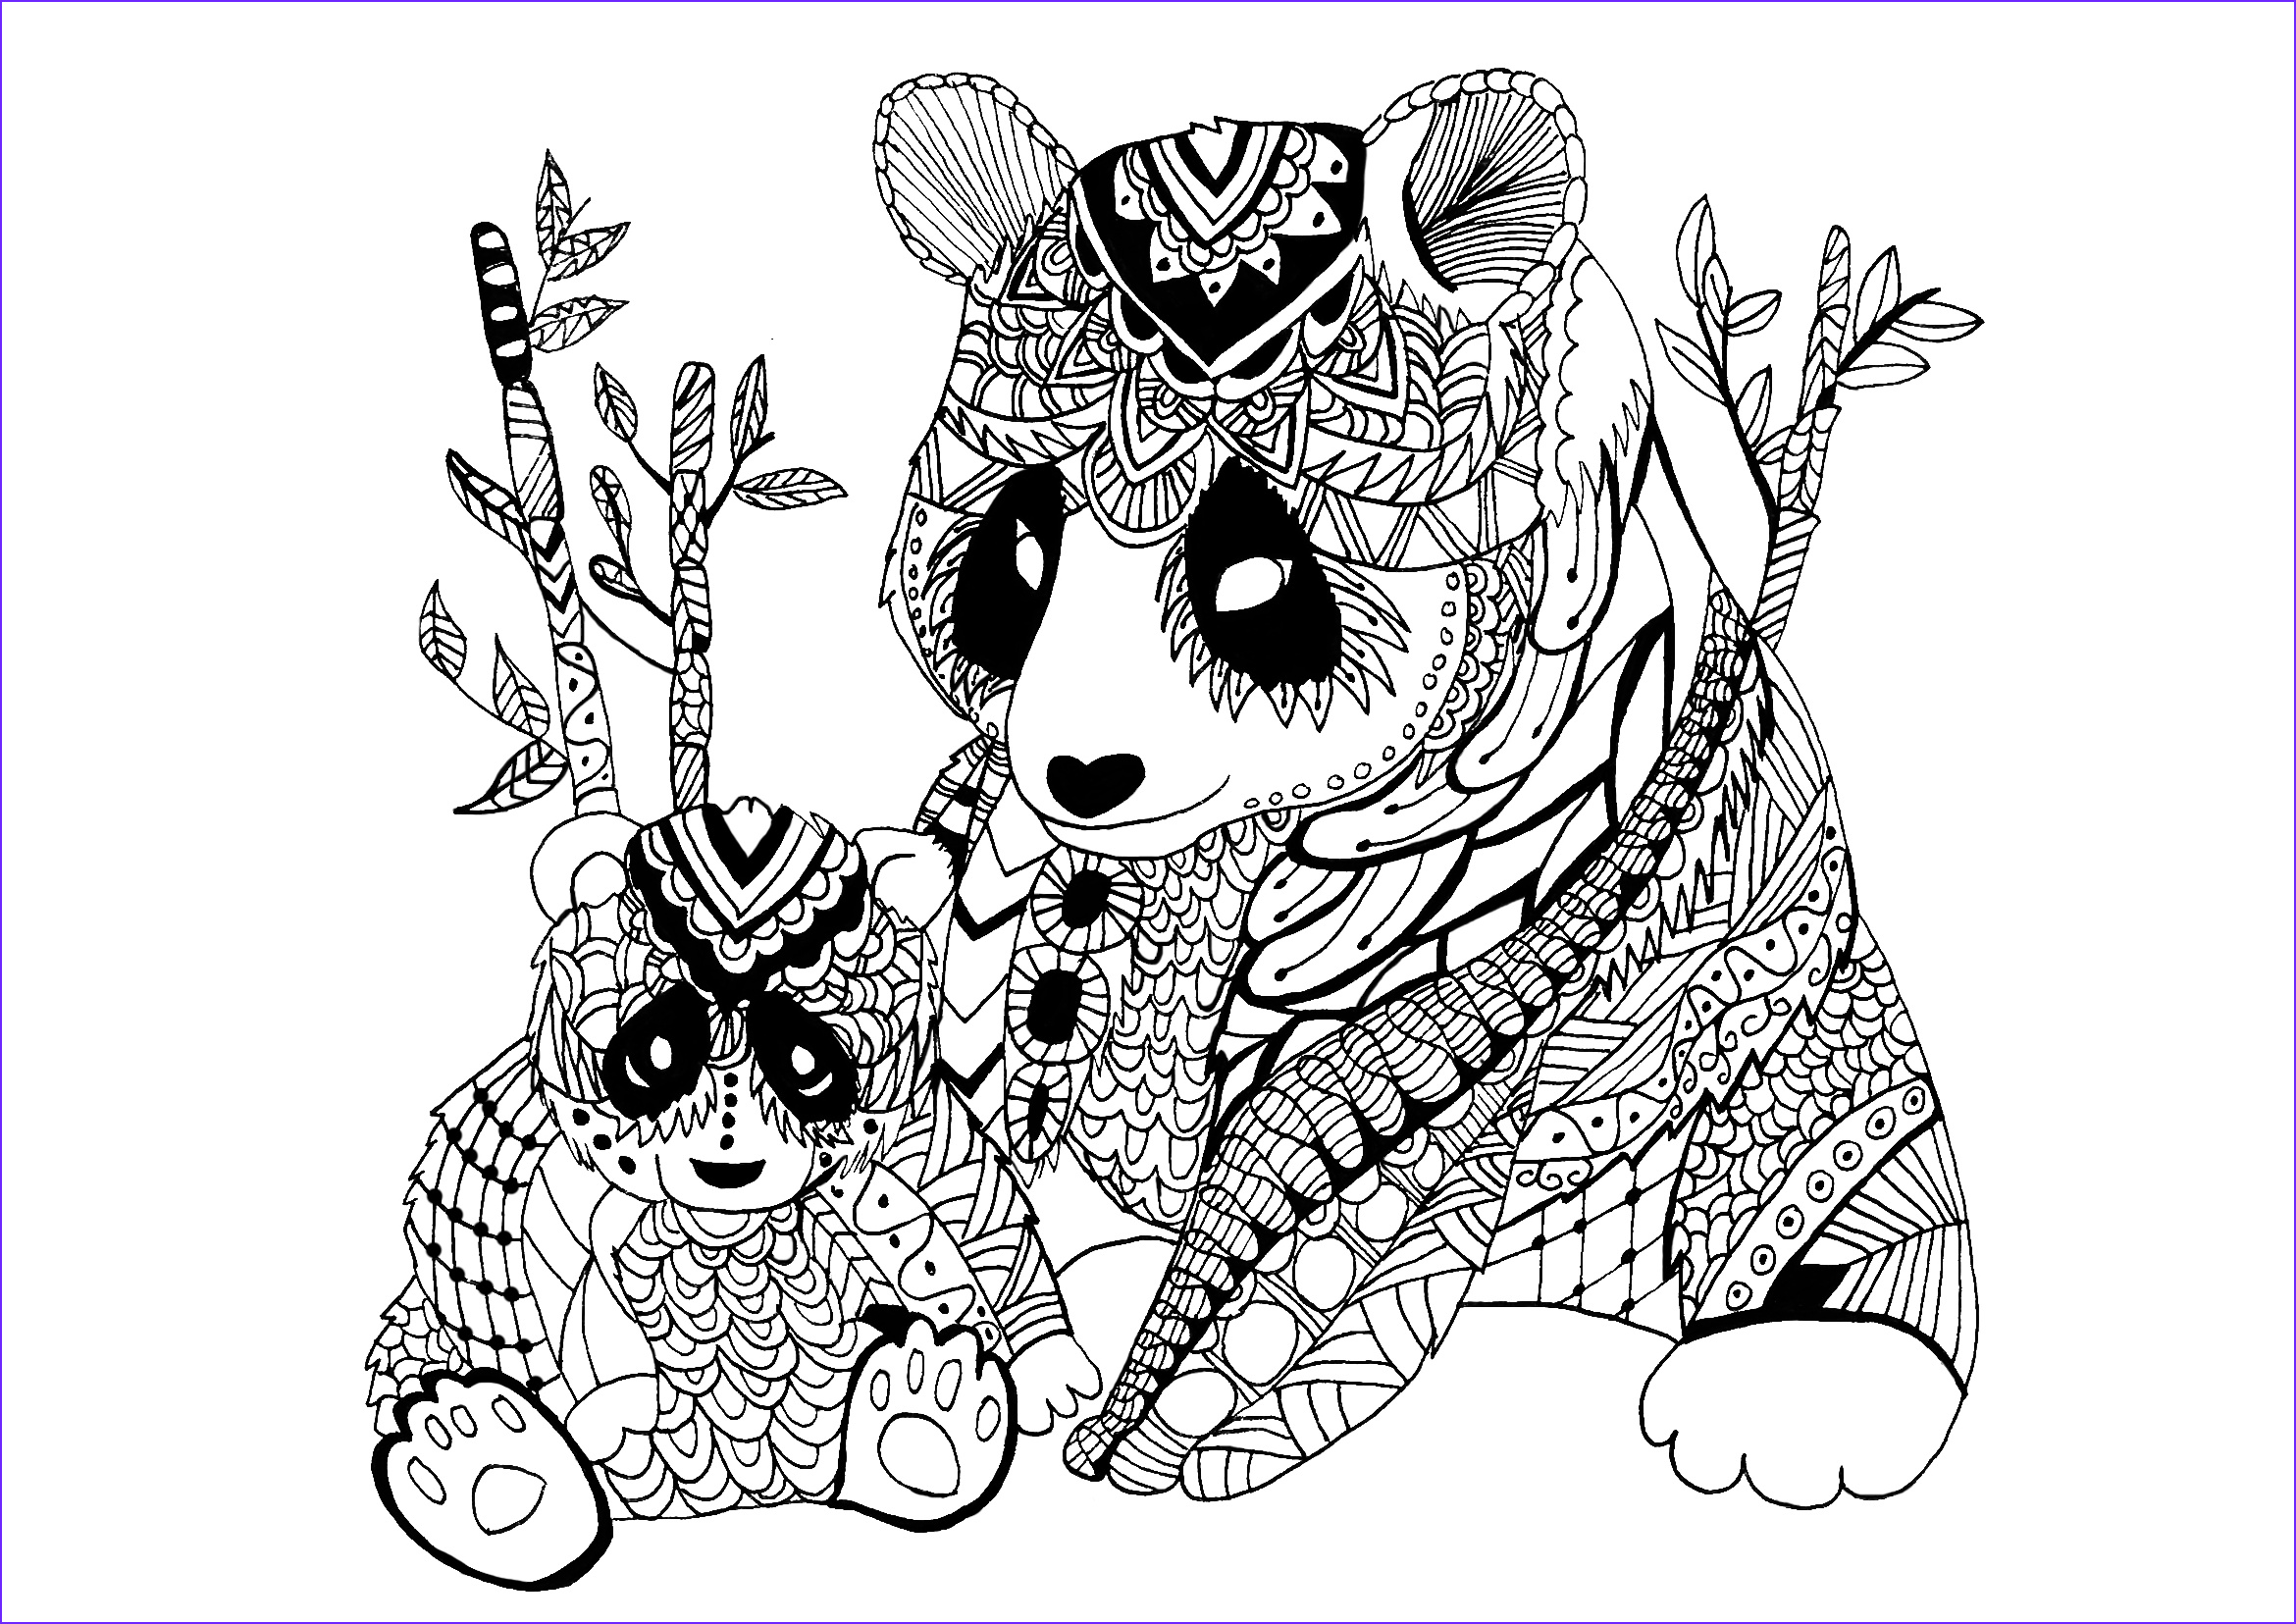 Coloring Pictures for Adults New Stock Panda Coloring Pages Best Coloring Pages for Kids